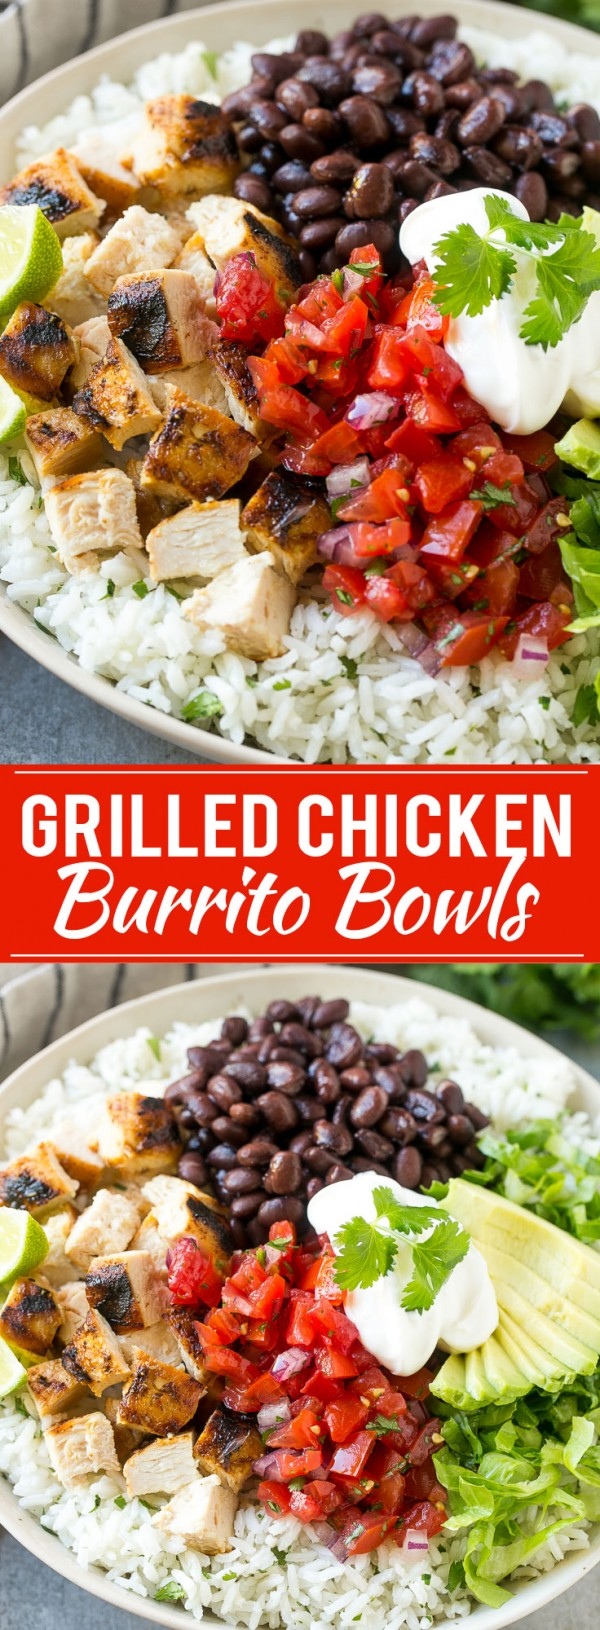 20 Unforgettable Chicken Recipes for a Romantic Dinner for Two - Get the recipe Grilled Chicken Burrito Bowls @recipes_to_go